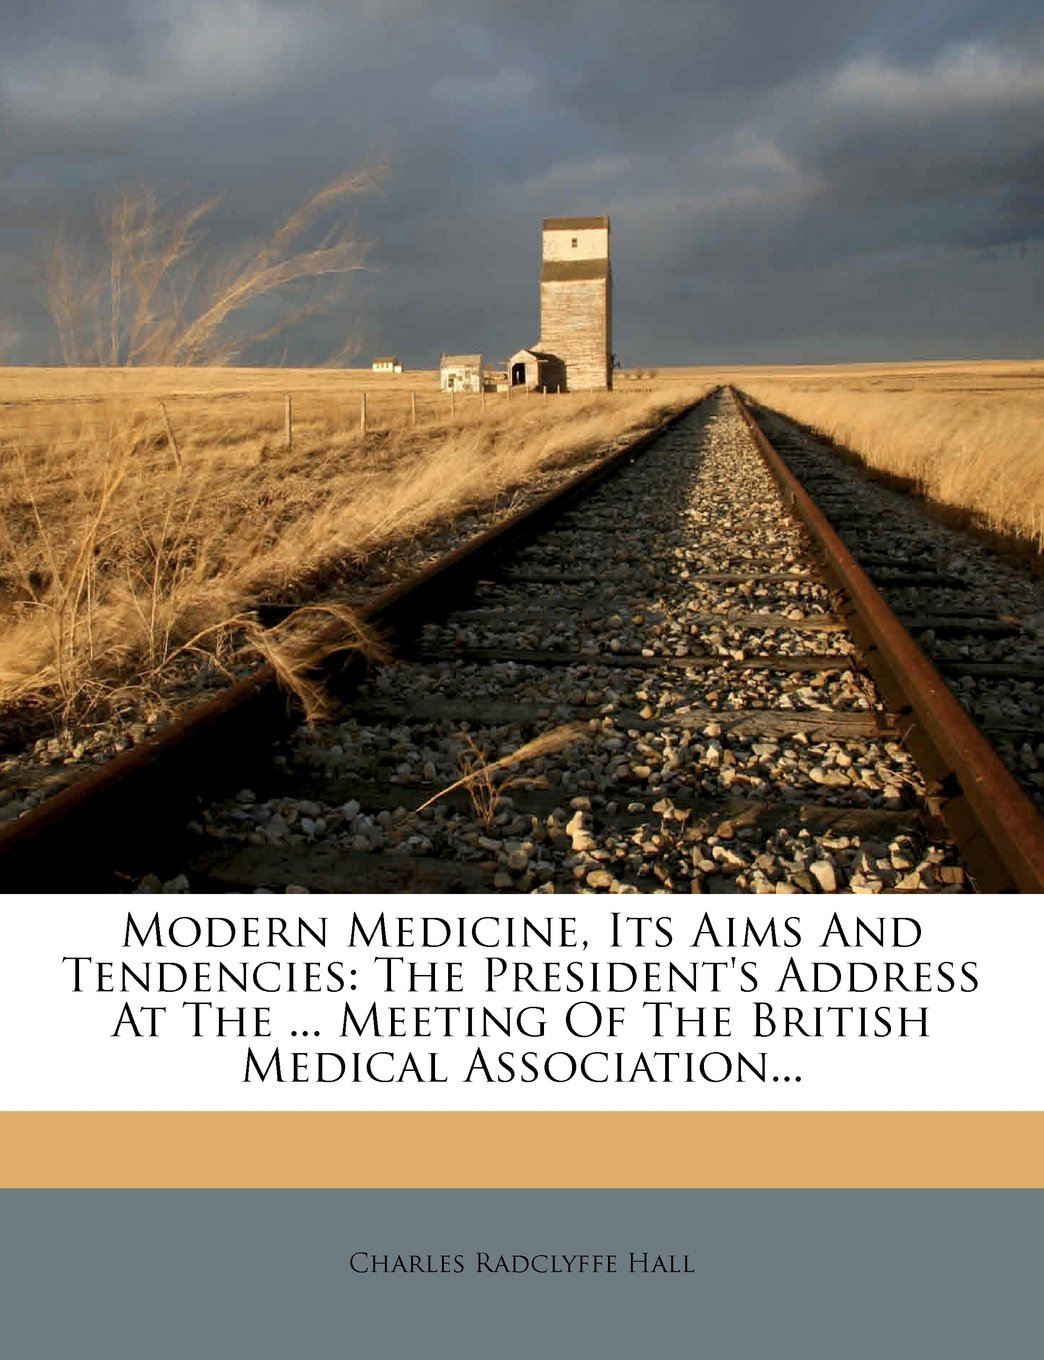 Modern Medicine, Its Aims And Tendencies: The President's Address At The ... Meeting Of The British Medical Association... pdf epub